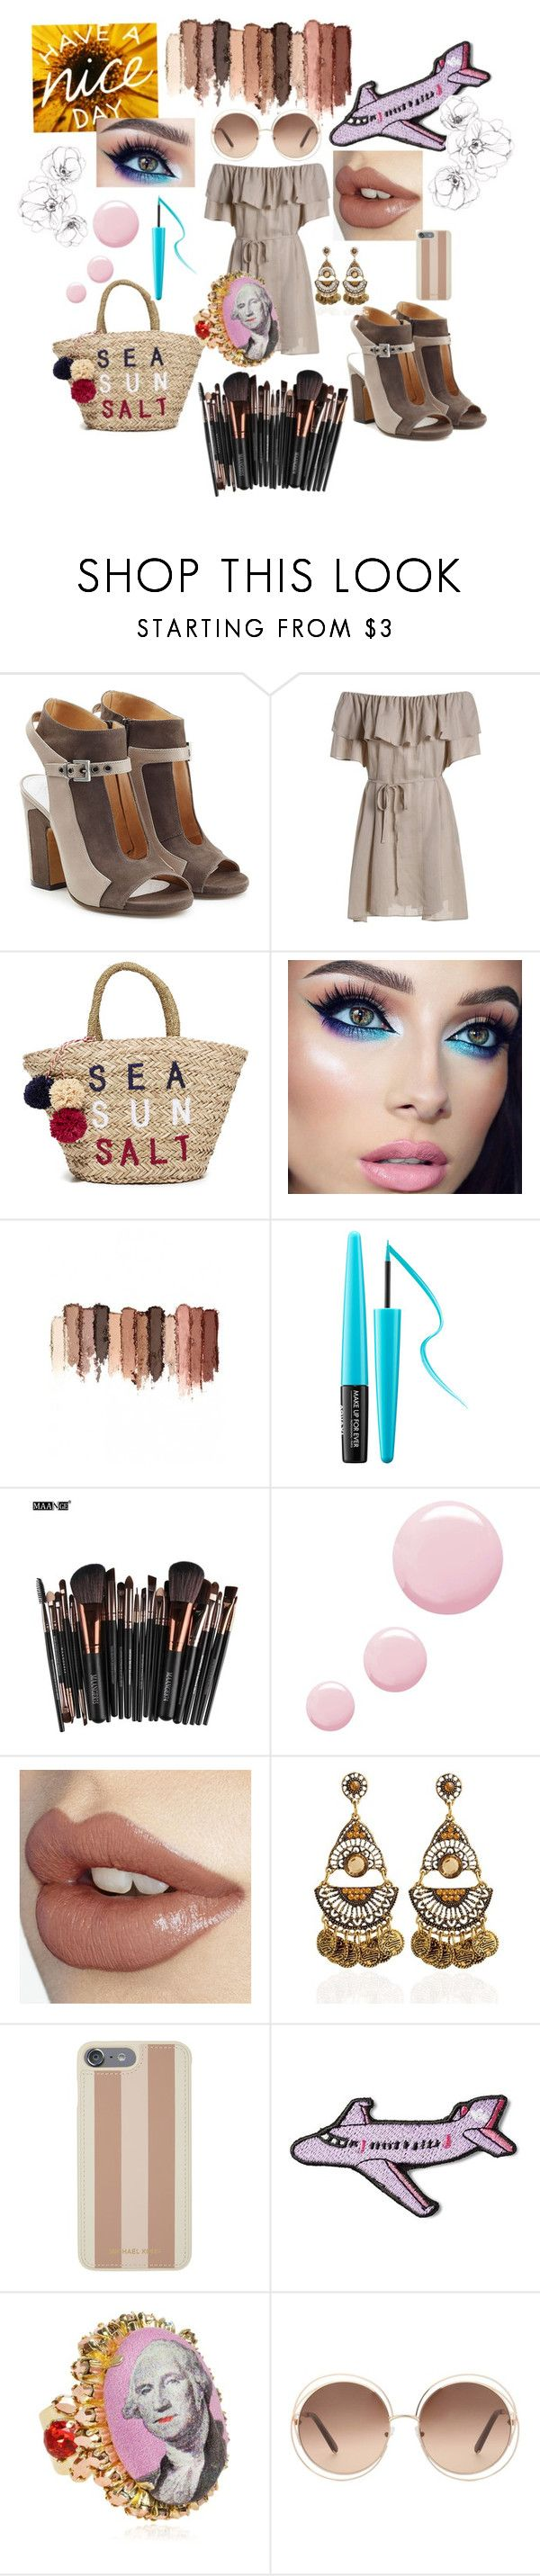 """""""AhNudMix"""" by tina-joplin ❤ liked on Polyvore featuring Maison Margiela, Sundry, tarte, MAKE UP FOR EVER, Topshop, Michael Kors, Stoney Clover Lane, Bijoux de Famille and Chloé"""